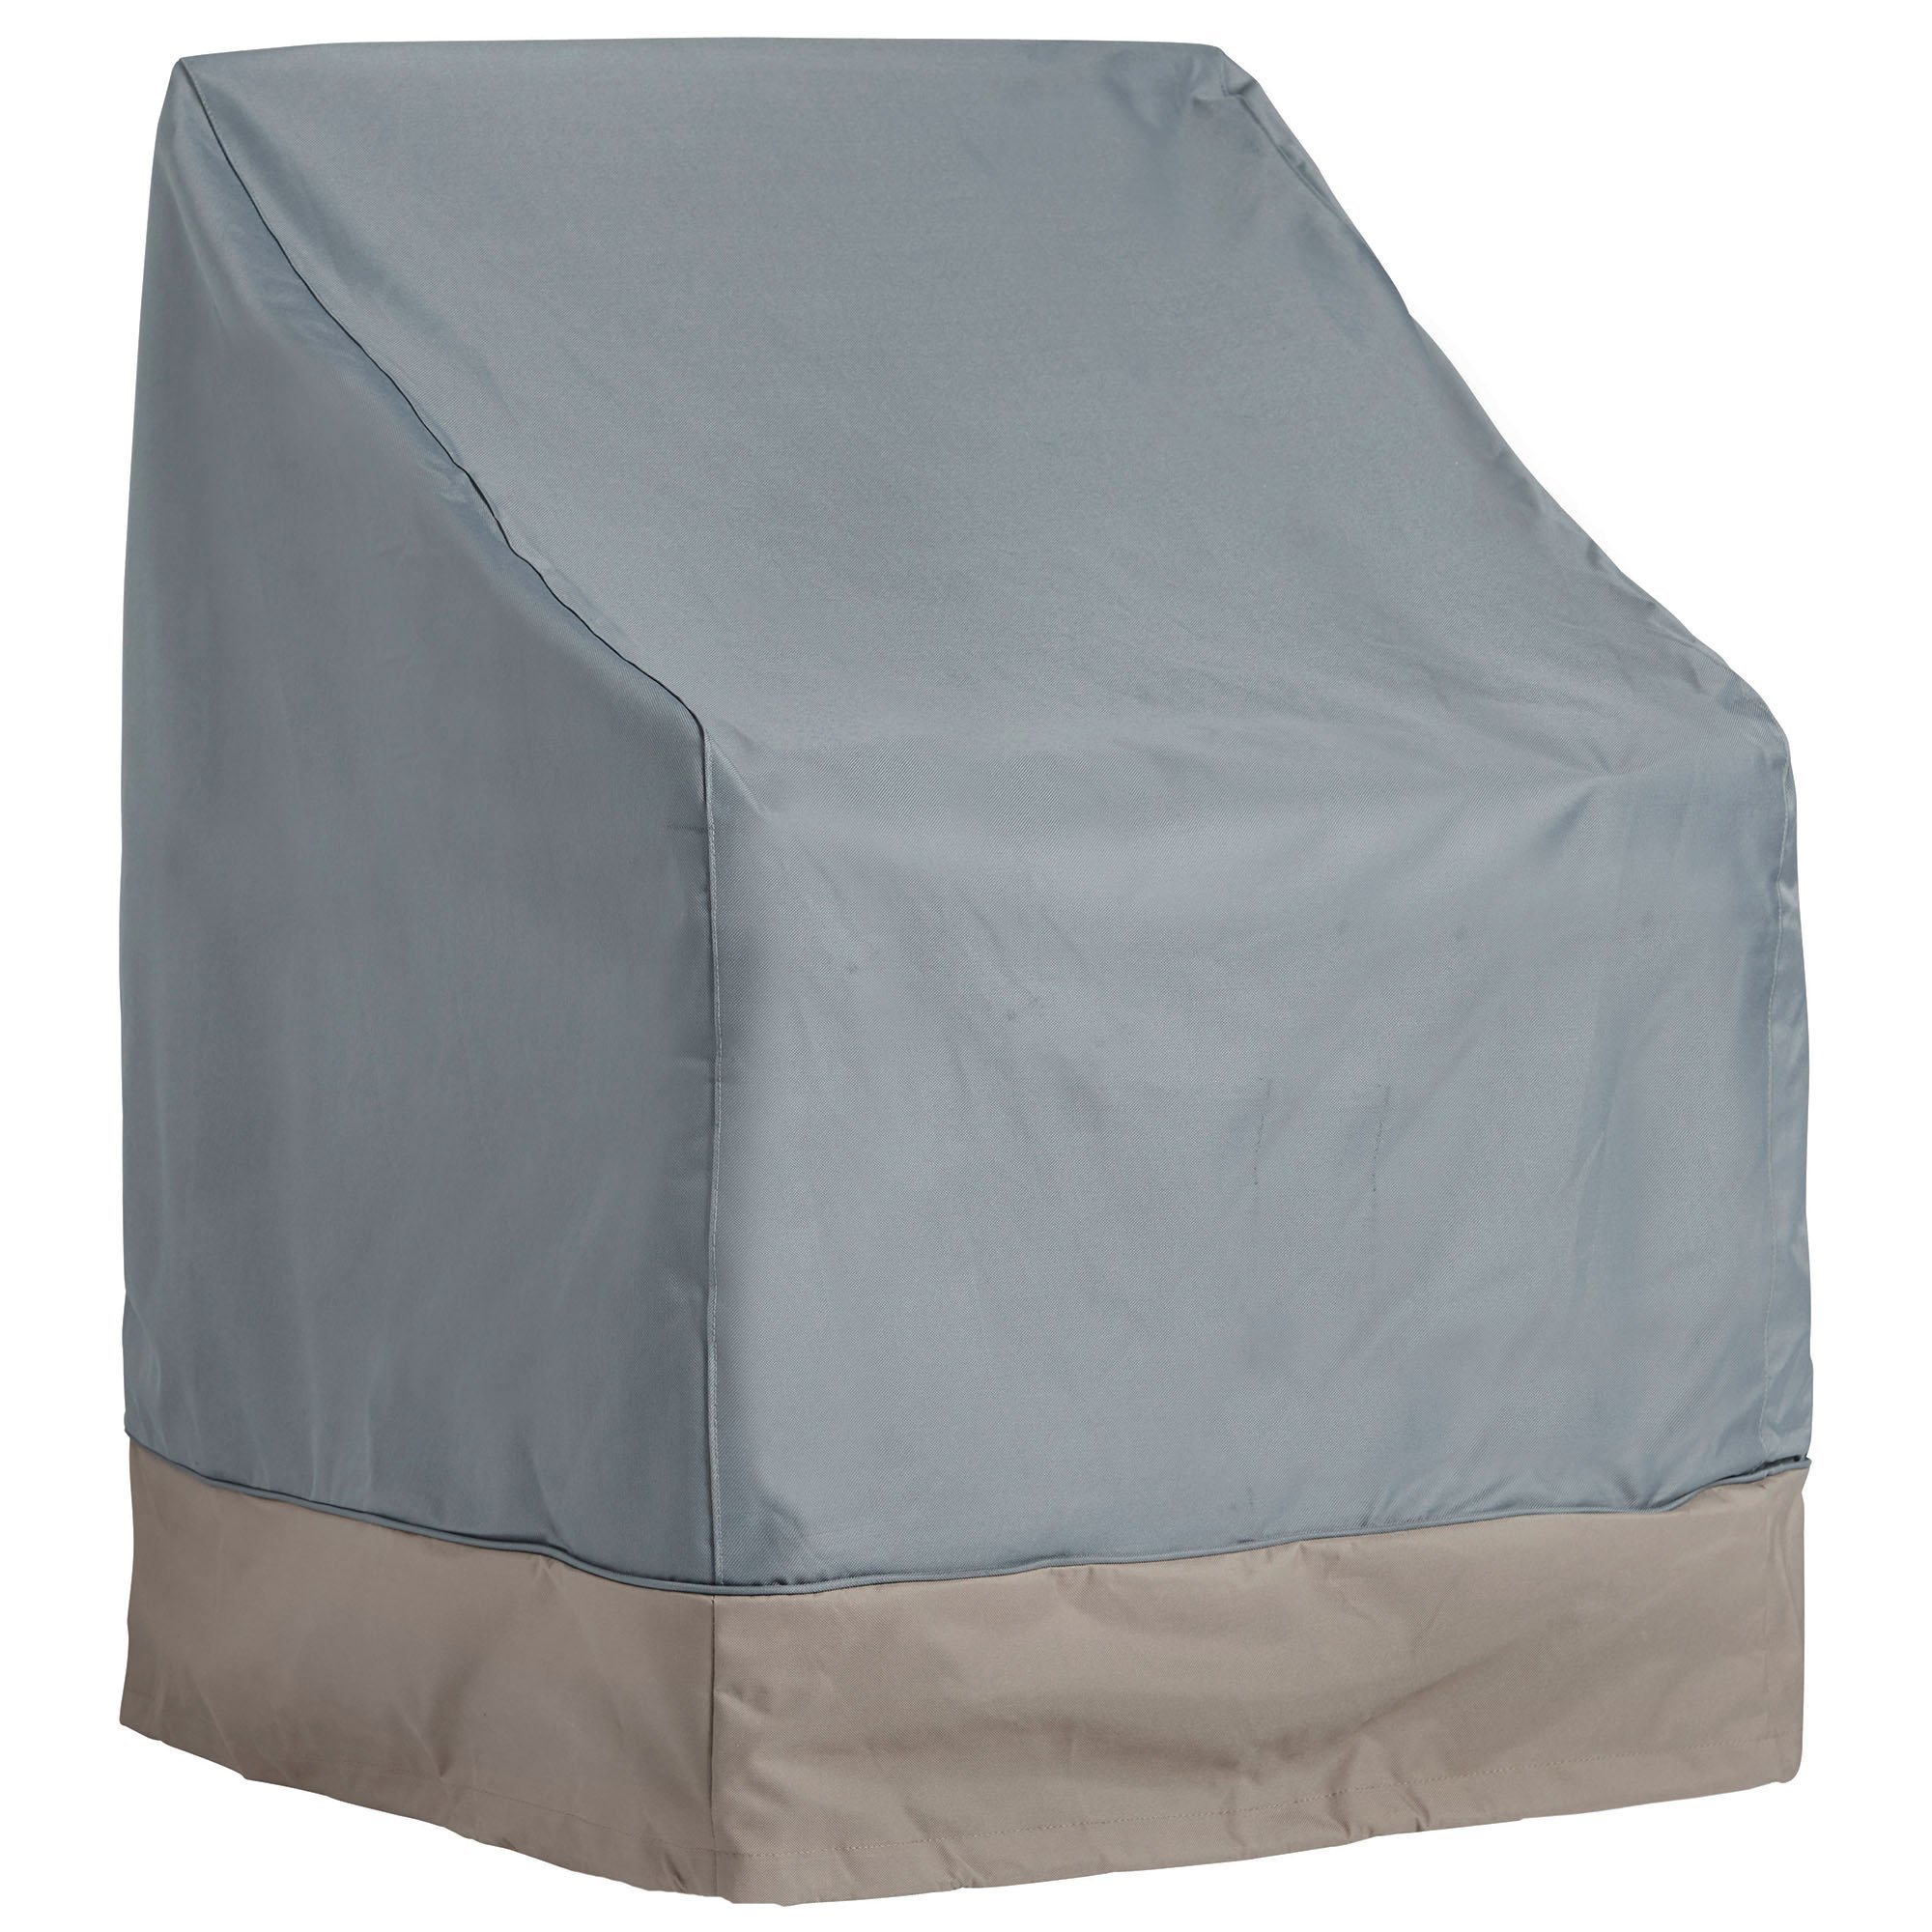 VonHaus Single Patio Chair Cover - 'The Storm Collection' Premium Heavy Duty Waterproof Outdoor Furniture Protection - Slate Grey with Beige Trim - L29.5 x W27.5 x H25-40 inches